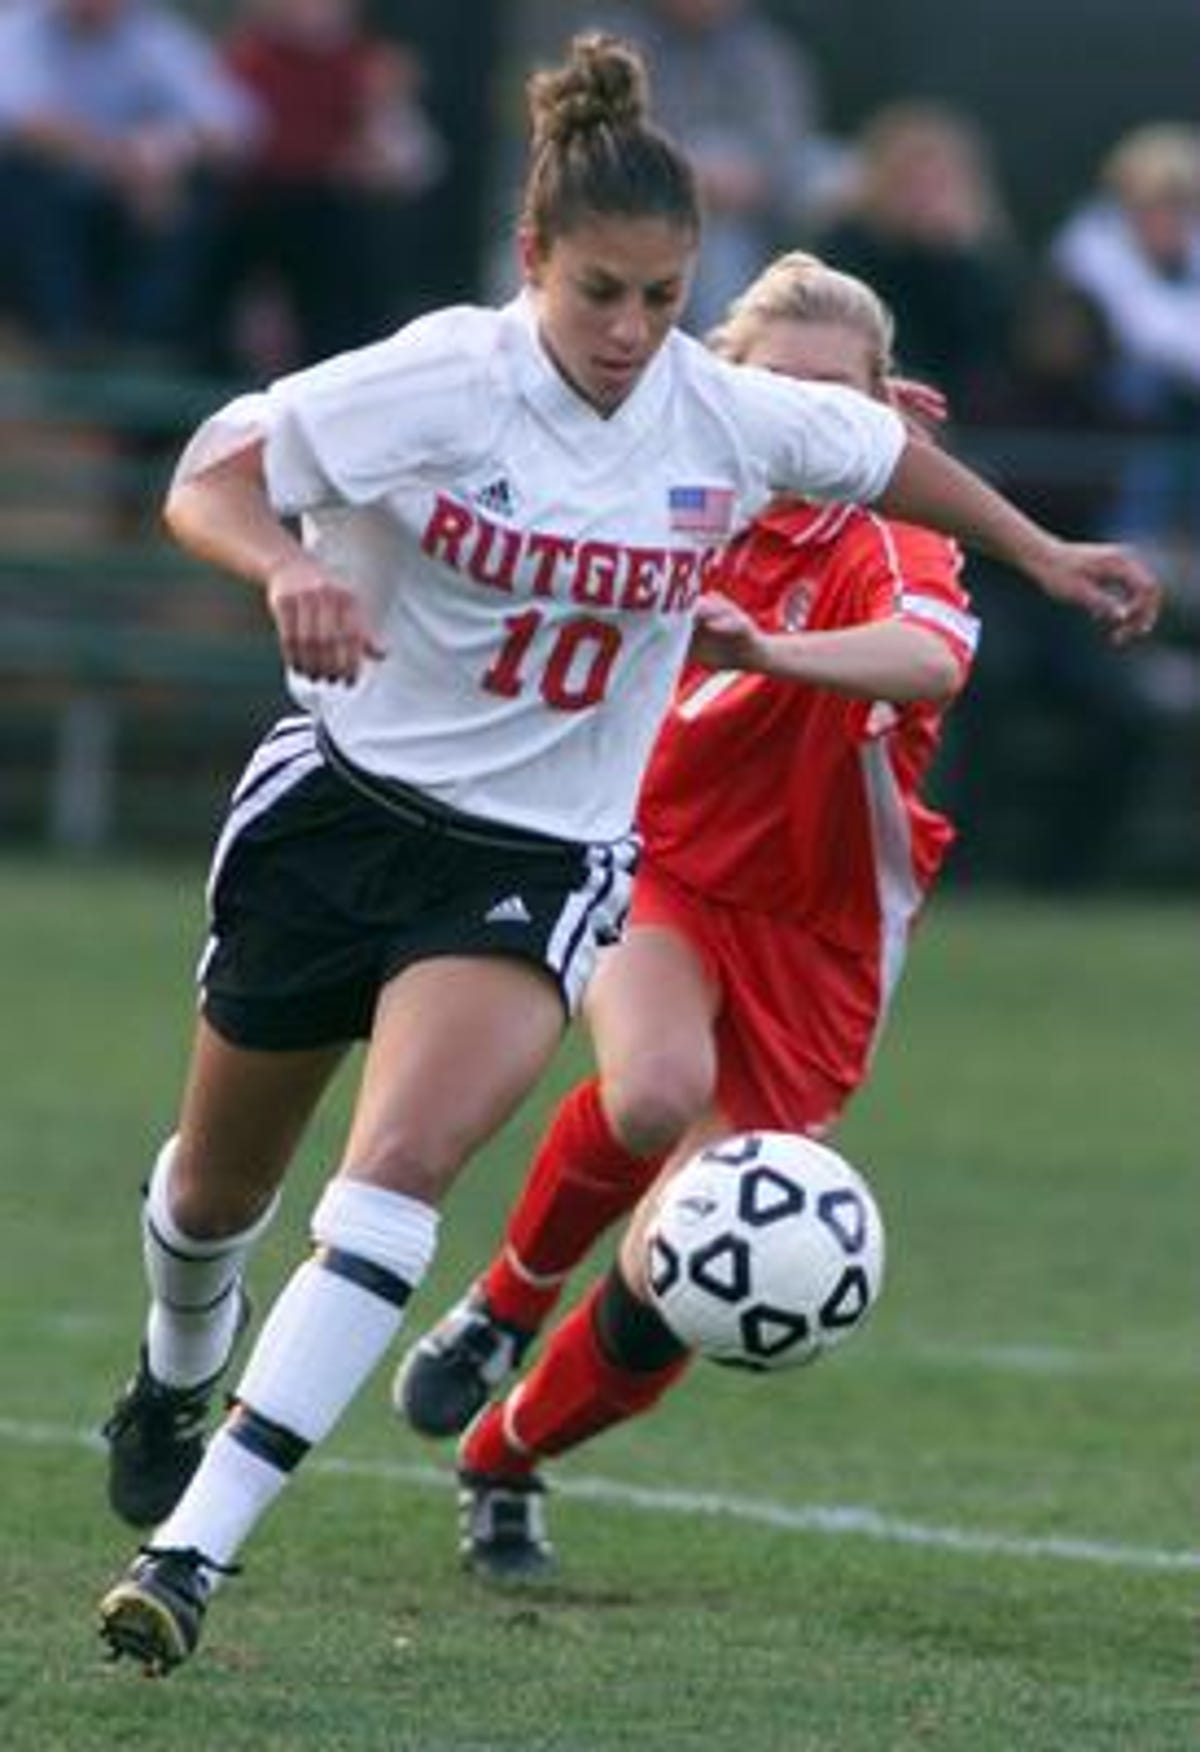 buy popular 0e645 a6cc0 At last: Carli Lloyd going into Rutgers Athletics Hall of Fame